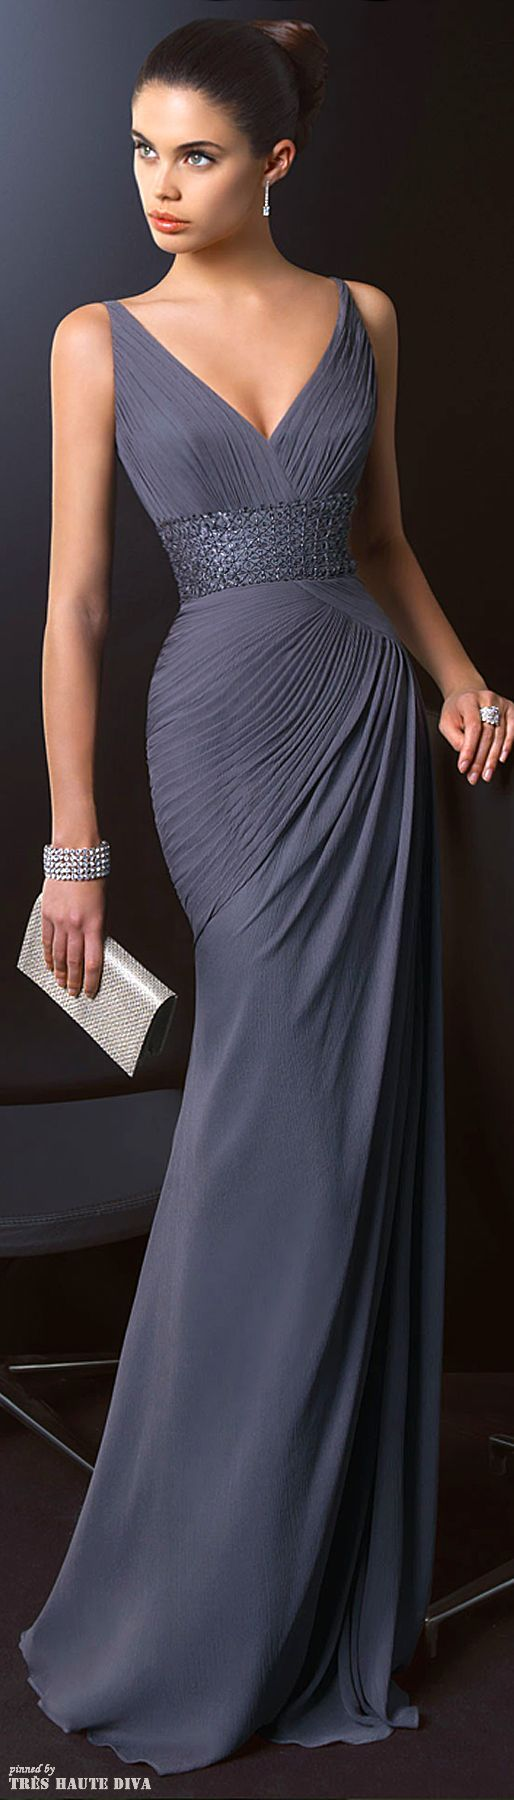 17 Best ideas about Elegant Evening Dresses on Pinterest | Ball ...